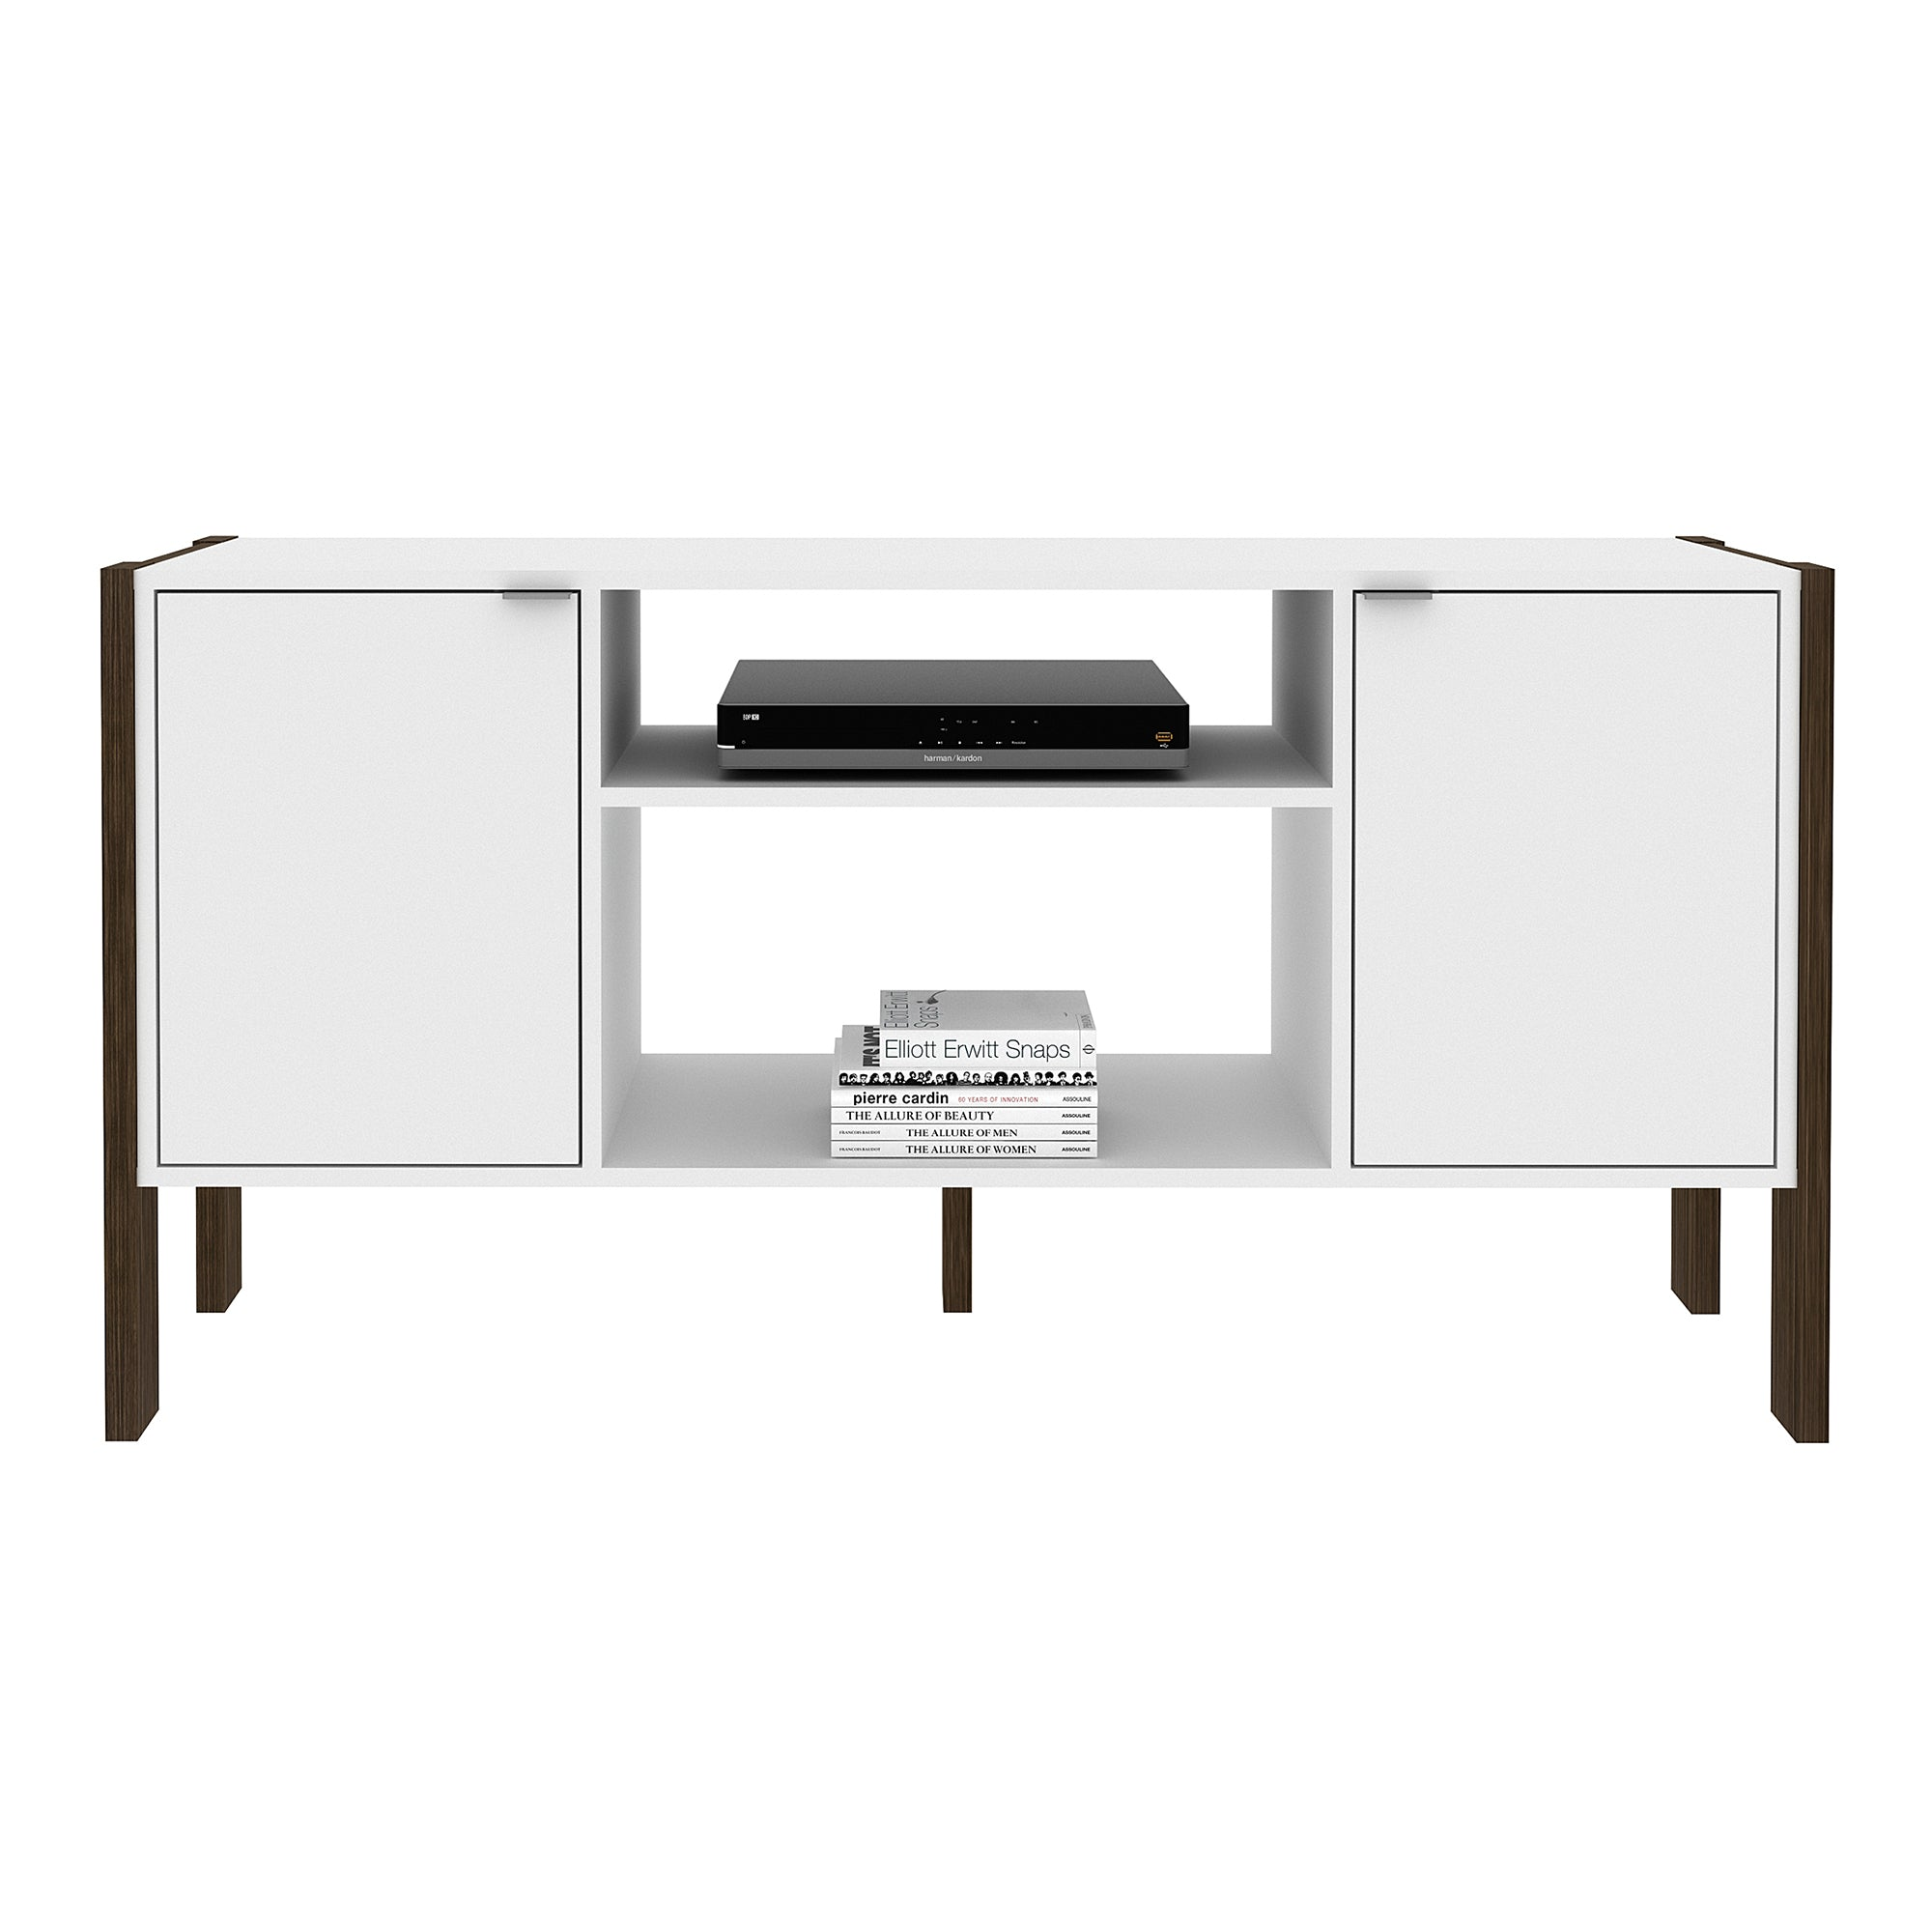 Mueble Rack p/ TV Blanco/Nogal AZ1015.0001 - Apartamento22